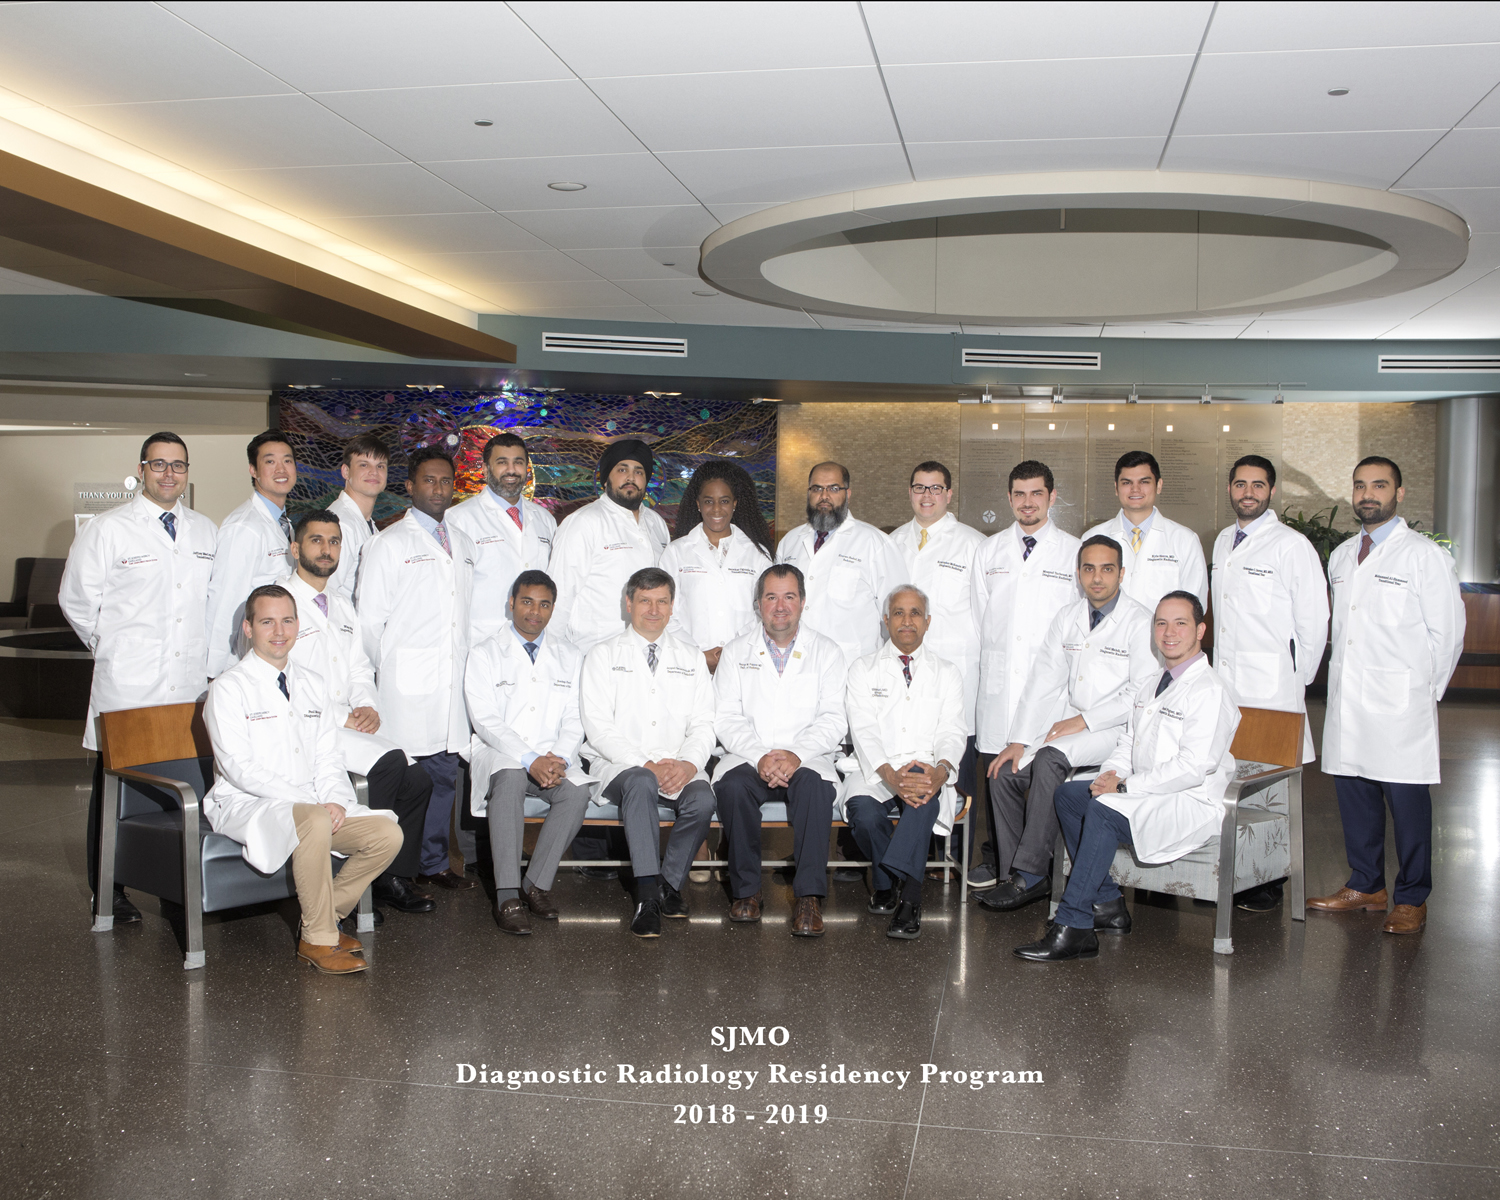 SJMO Radiology – Home of the diagnostic radiology residency